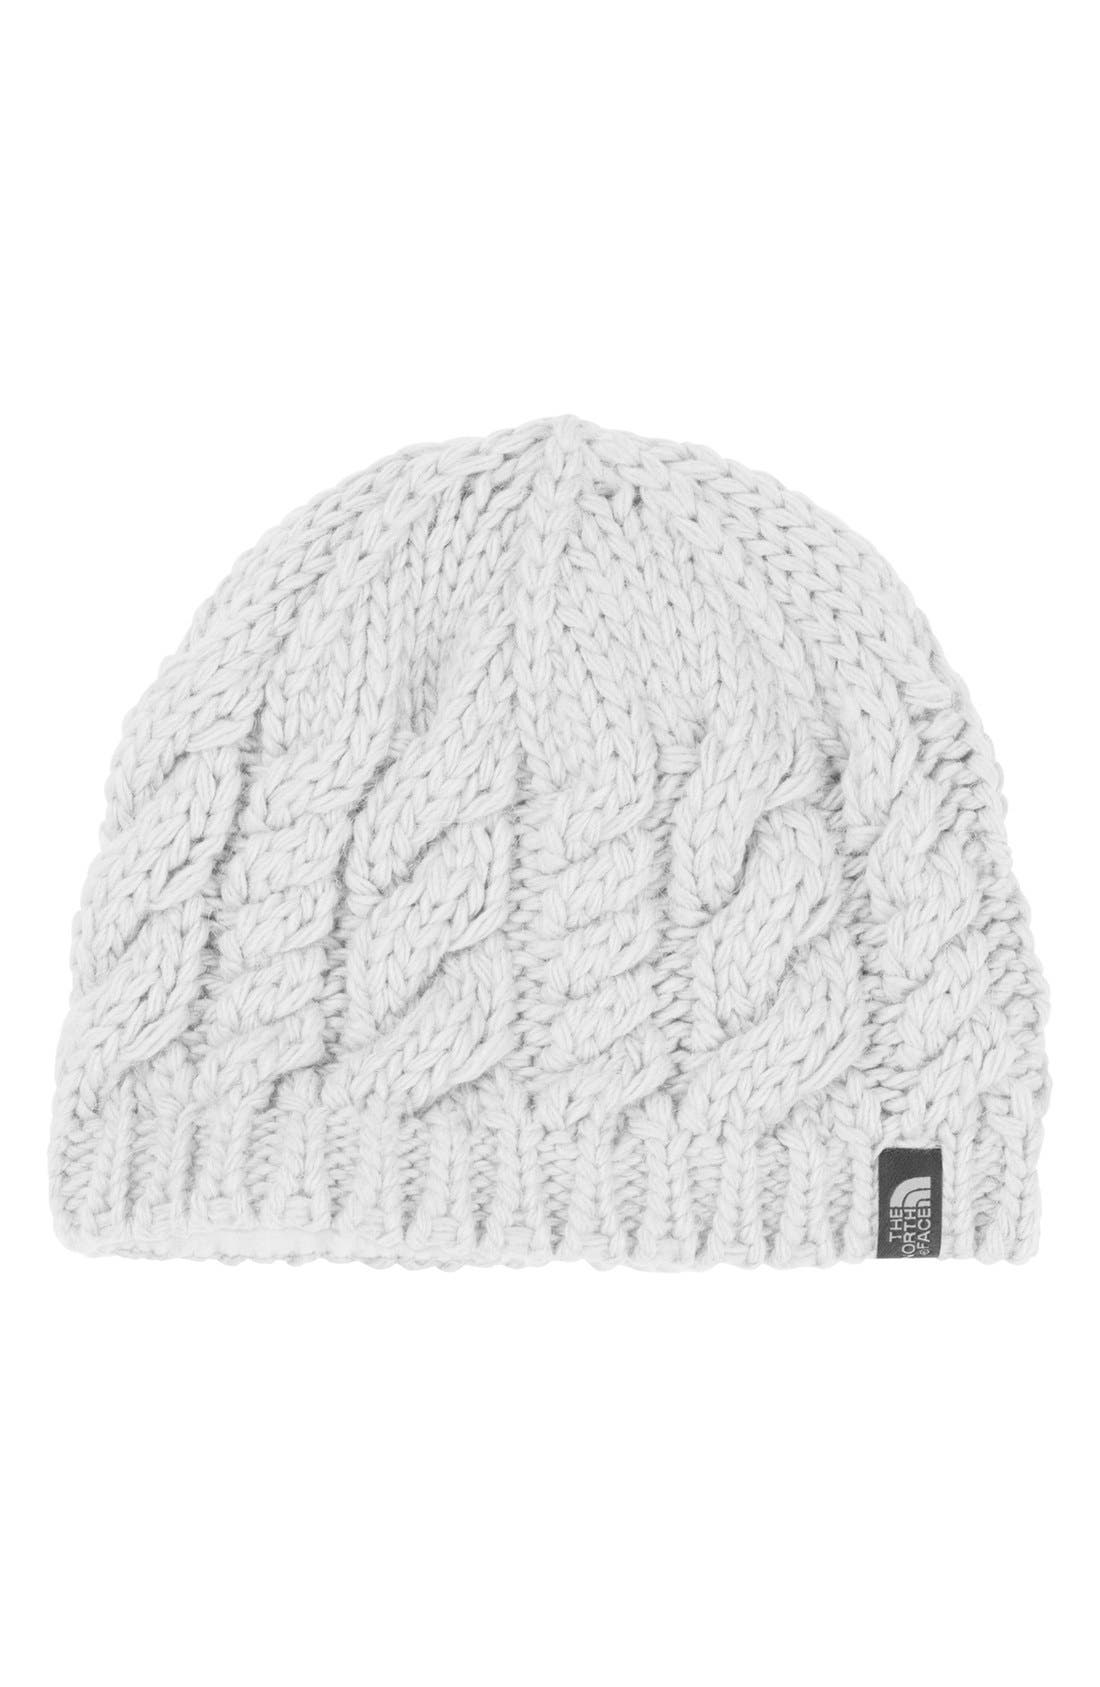 Main Image - The North Face 'Cable Fish' Beanie (Girls)